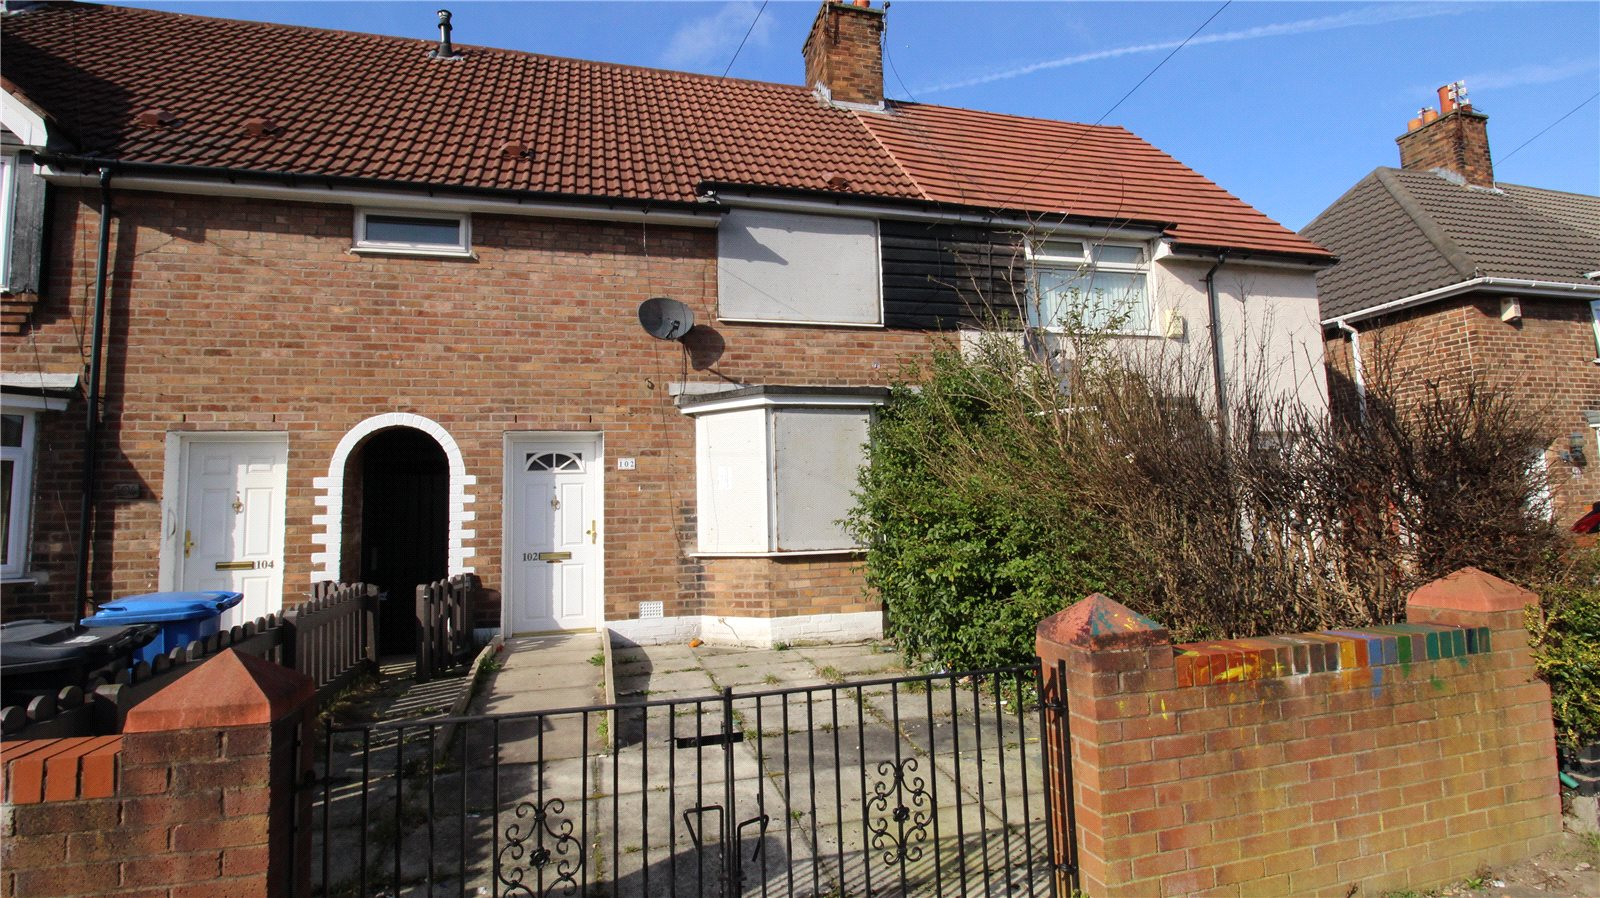 Whitegates Huyton 2 Bedroom House Sstc In Radway Road